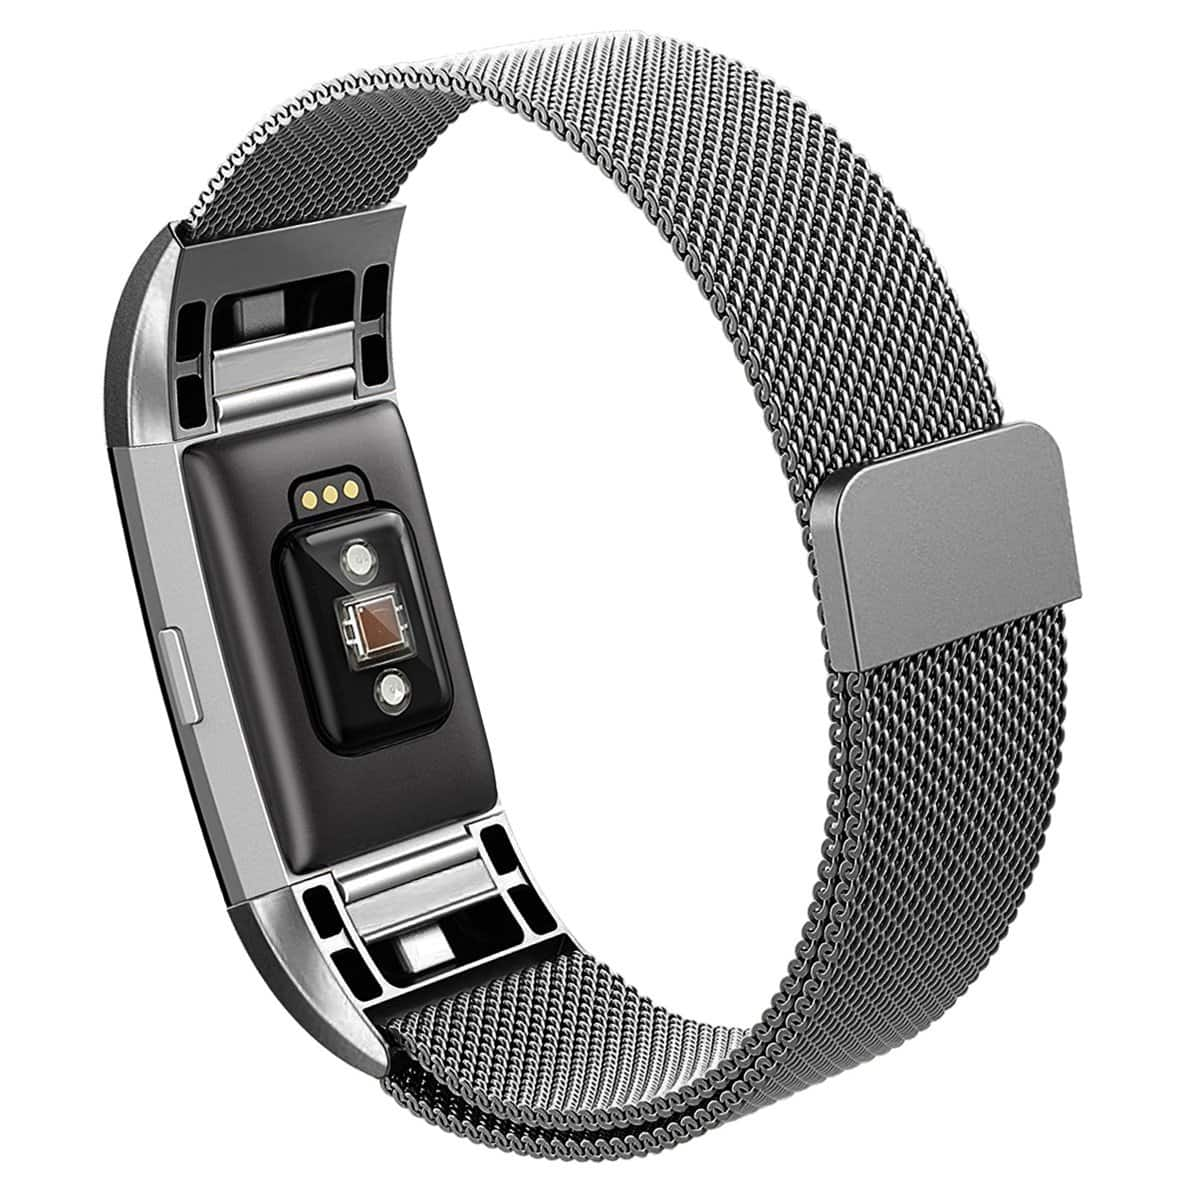 Fitbit Charge 2 Stainless Steel Band (Various colors) - $11.24 + Free Shipping+10%Coupon